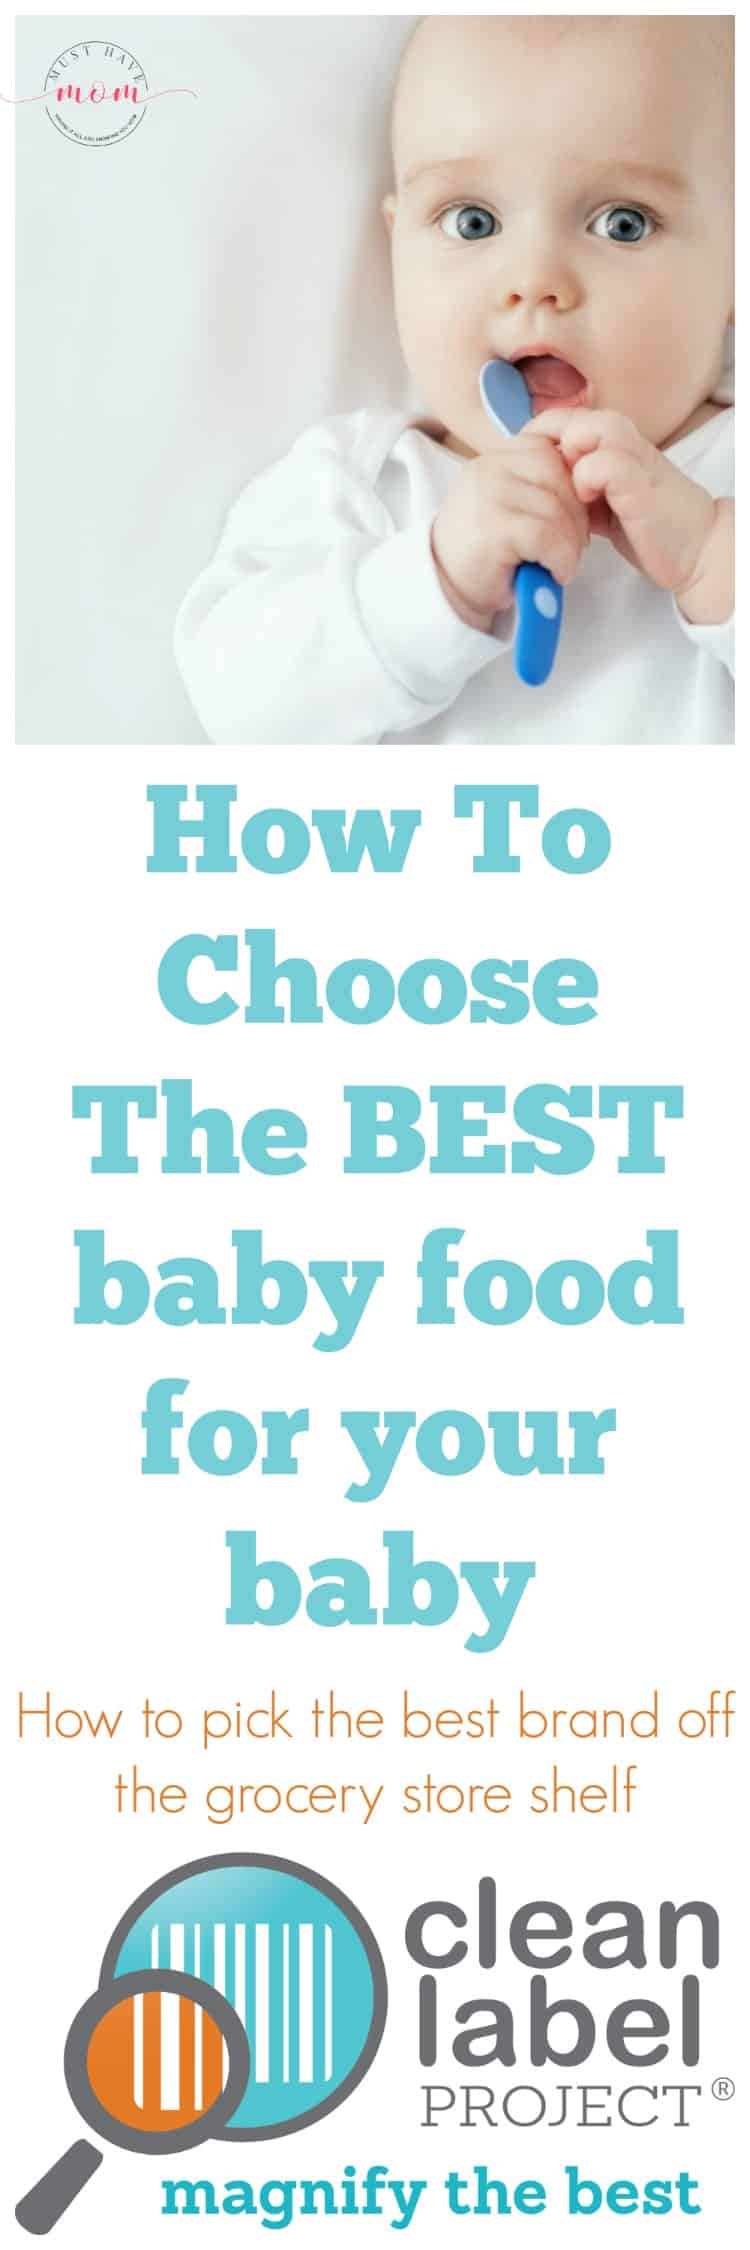 Clean Label Project exposes hidden chemicals, metals and more contaminants in your baby's food and baby formula. See how to choose the best baby food for your child with their results.